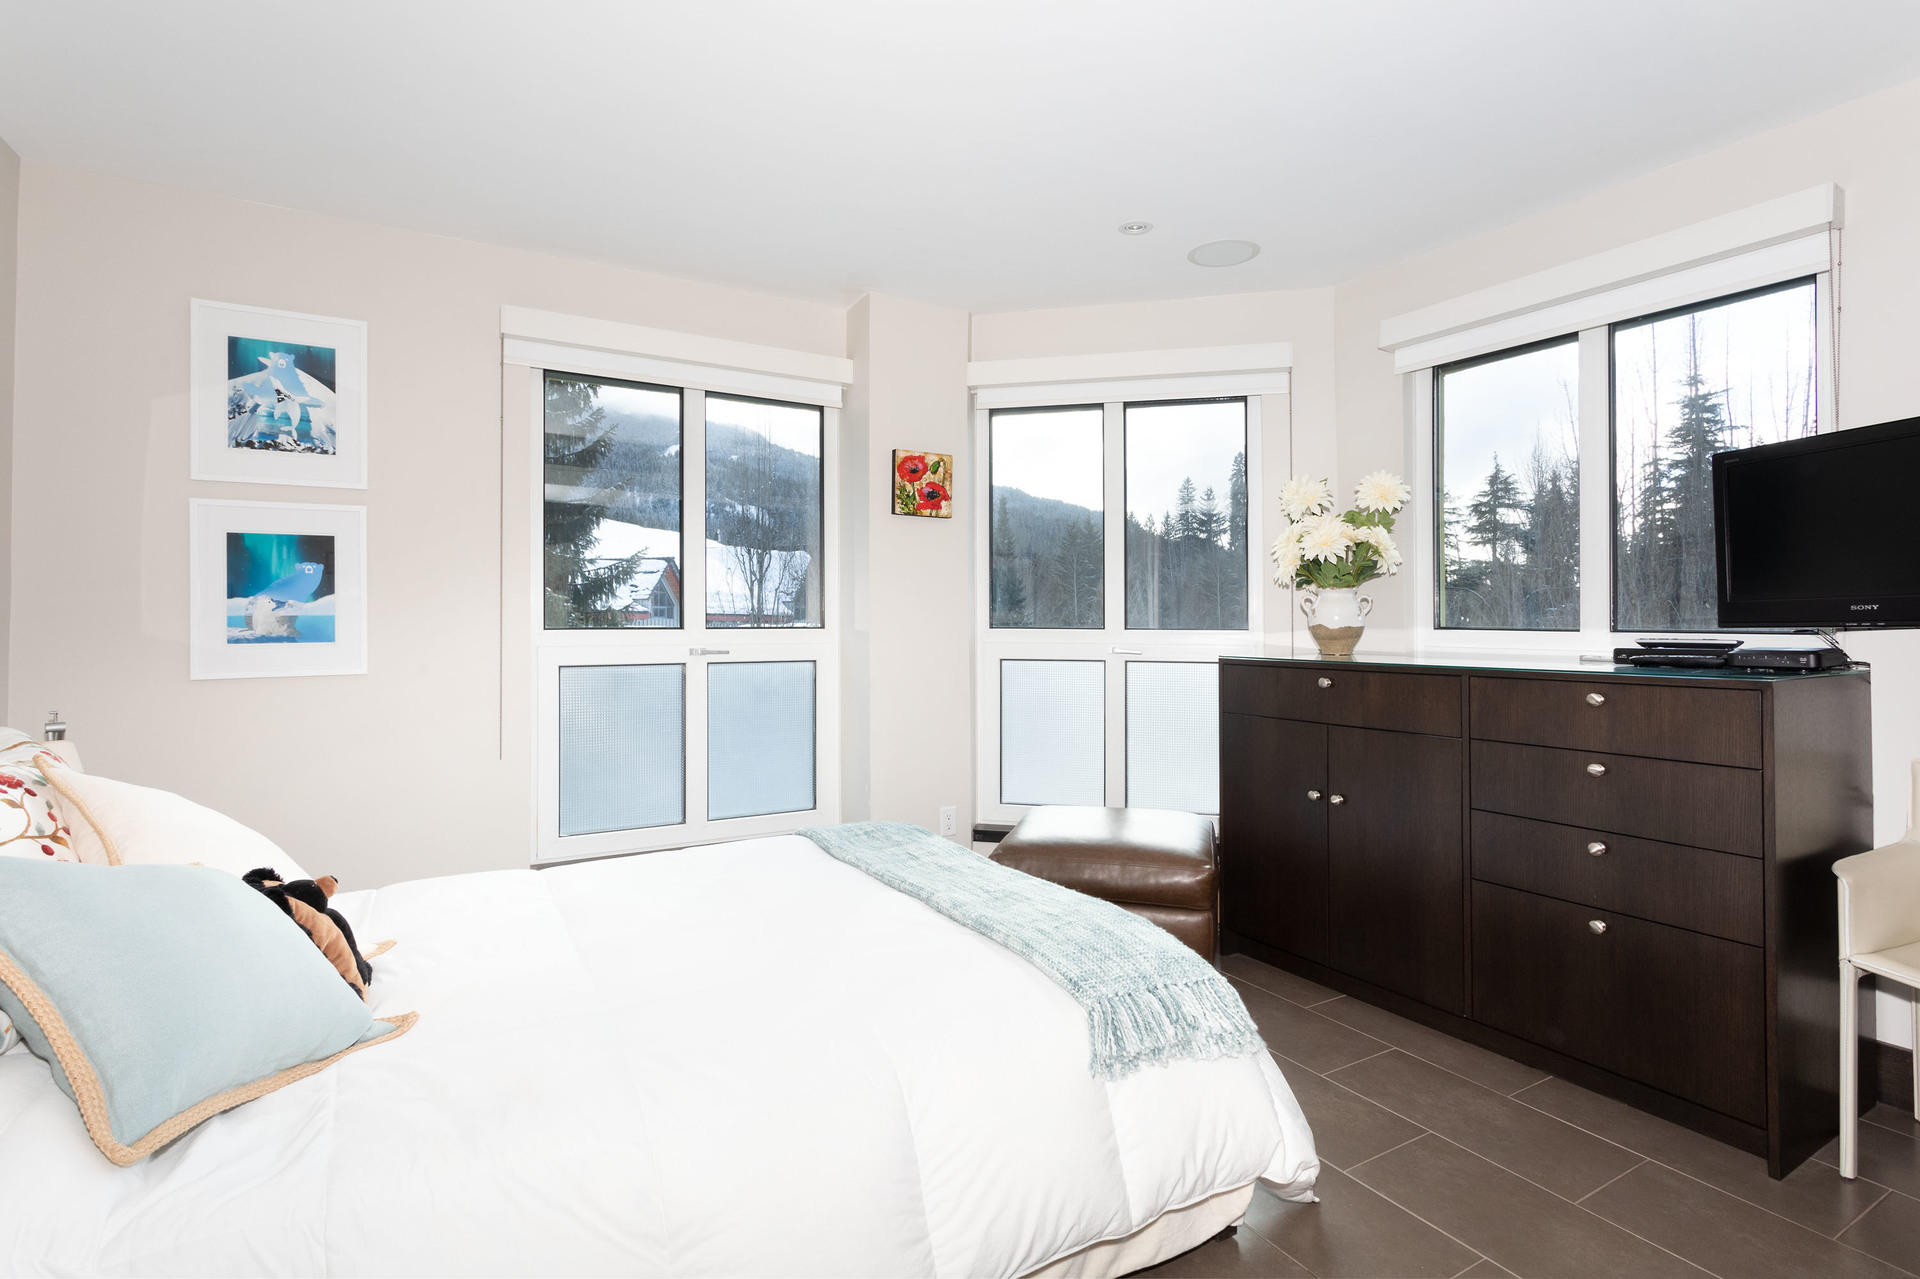 8 at 204 - 4557 Blackcomb Way, Benchlands, Whistler